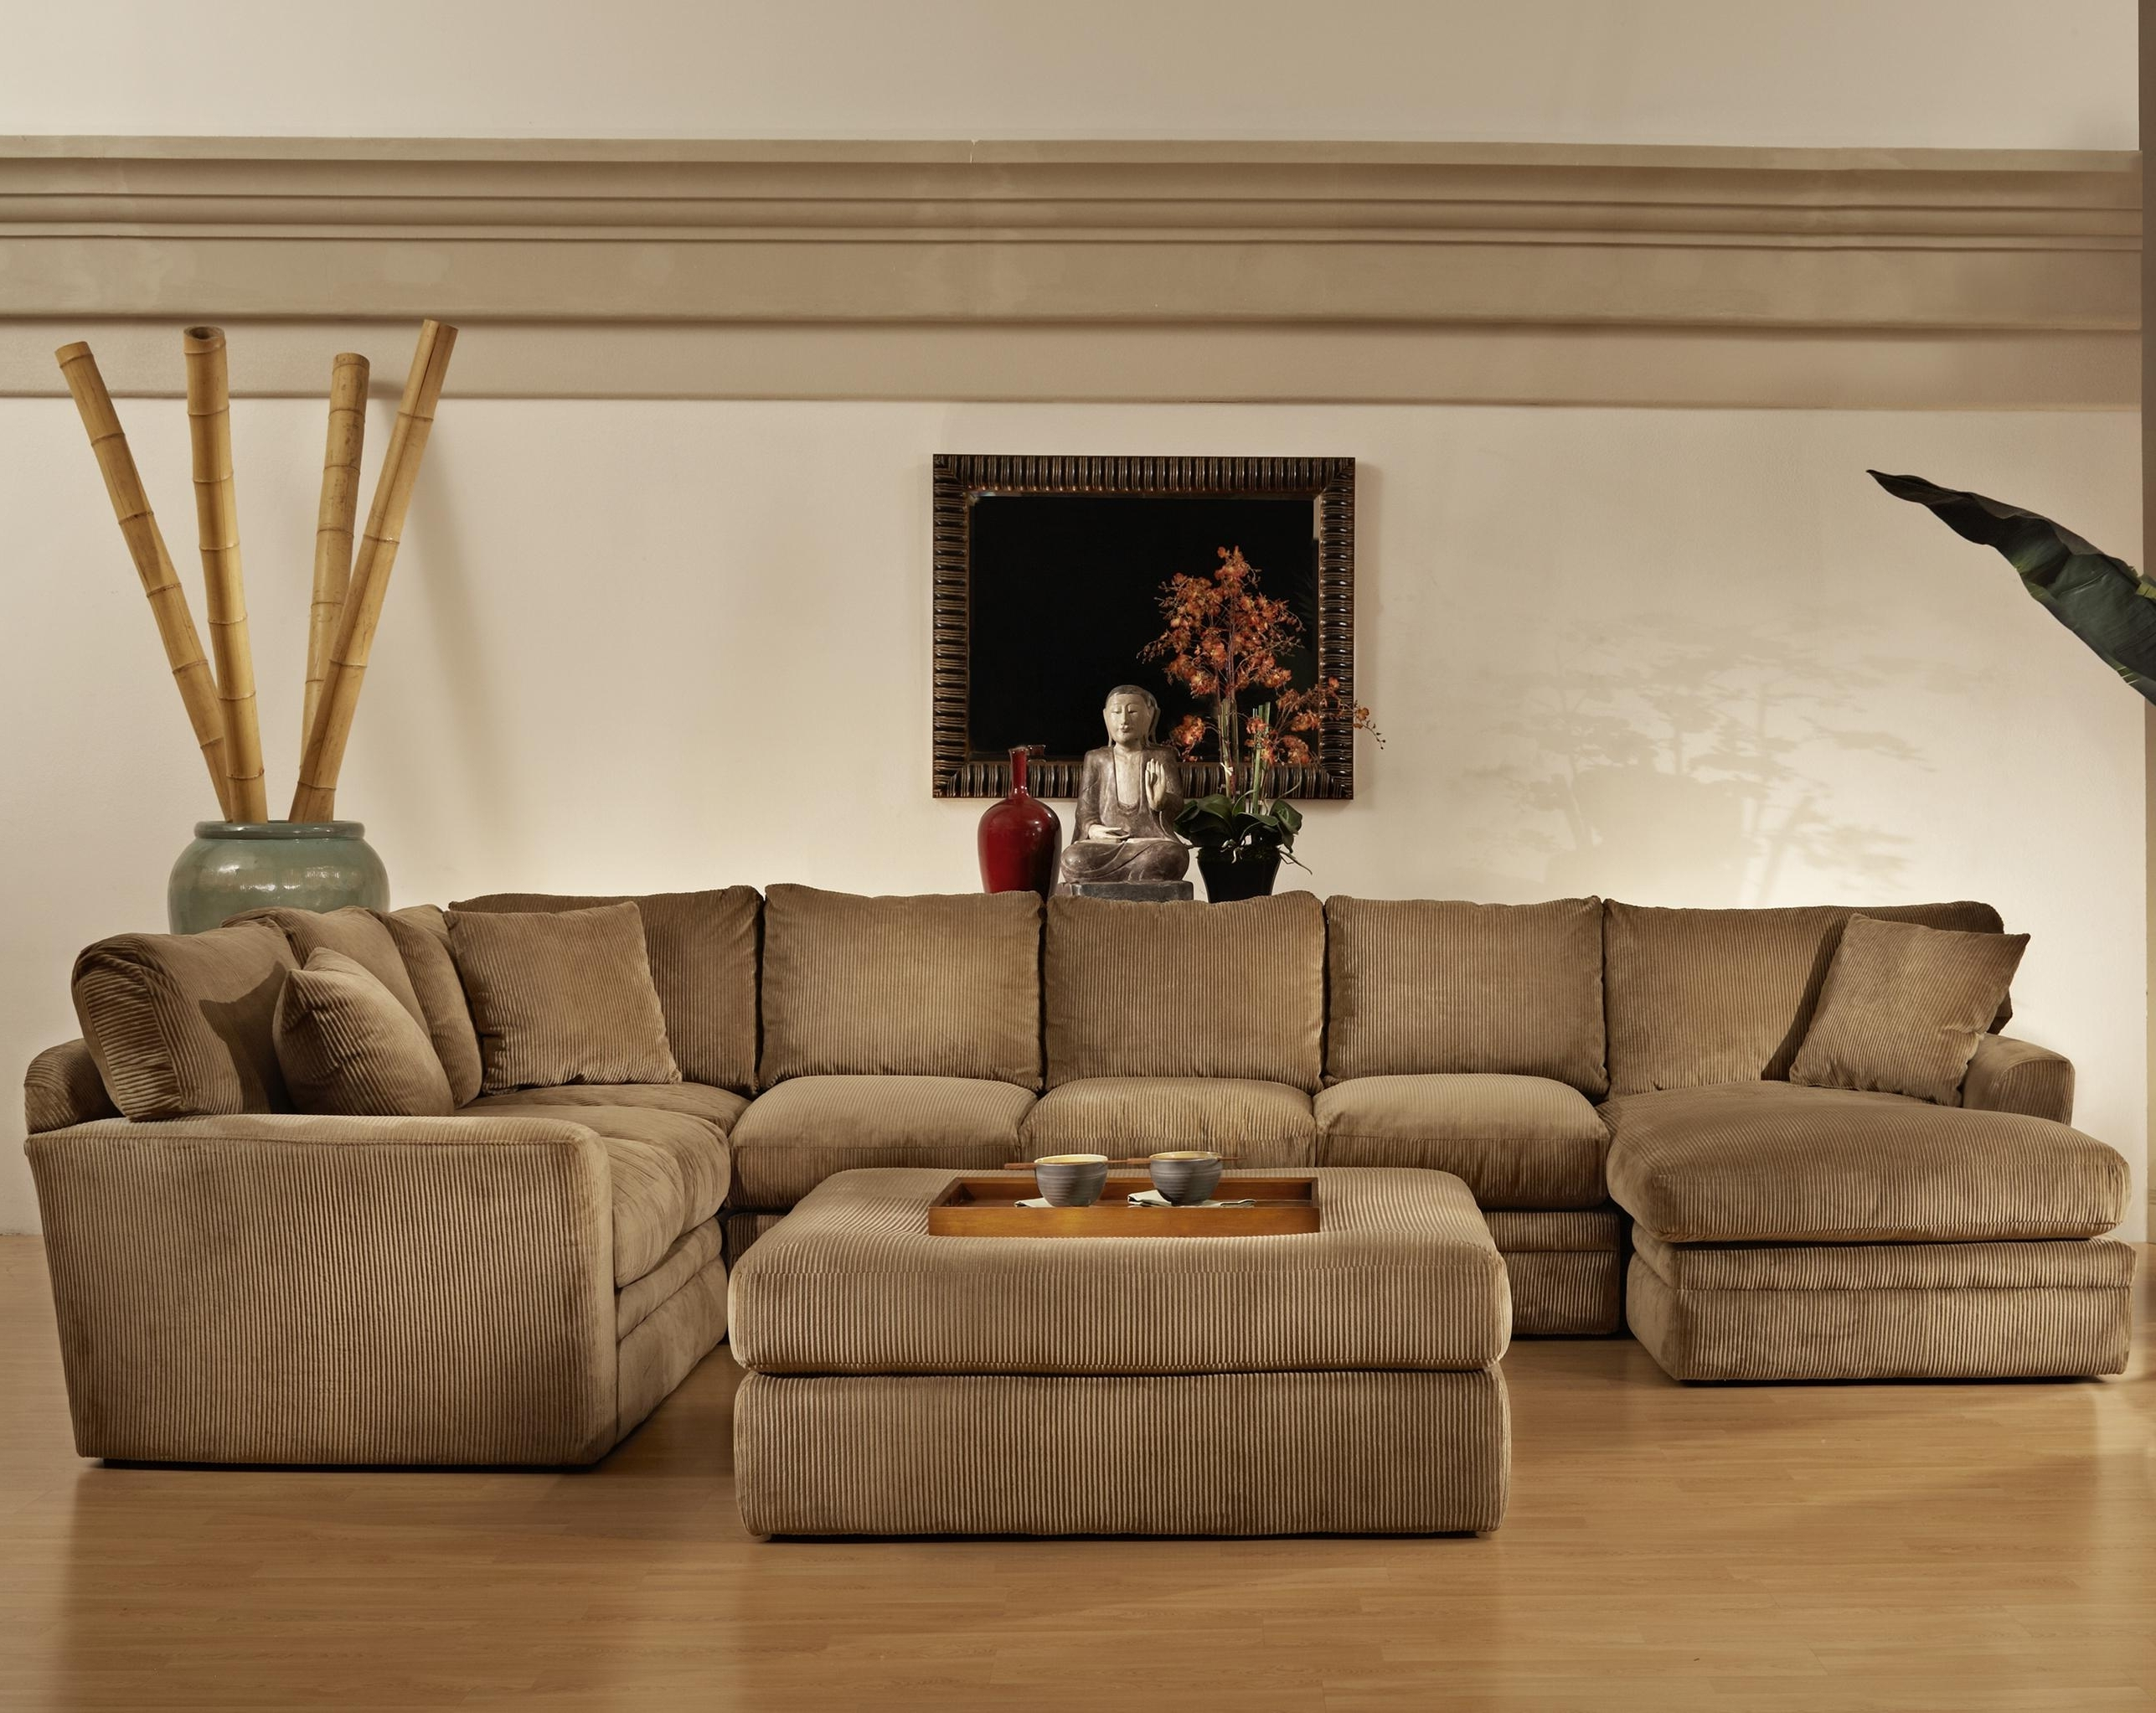 Comfy Sectional Sofas Intended For Recent Living Room Design: Comfy Sofa Sectionals For Home Interior Design (View 18 of 20)